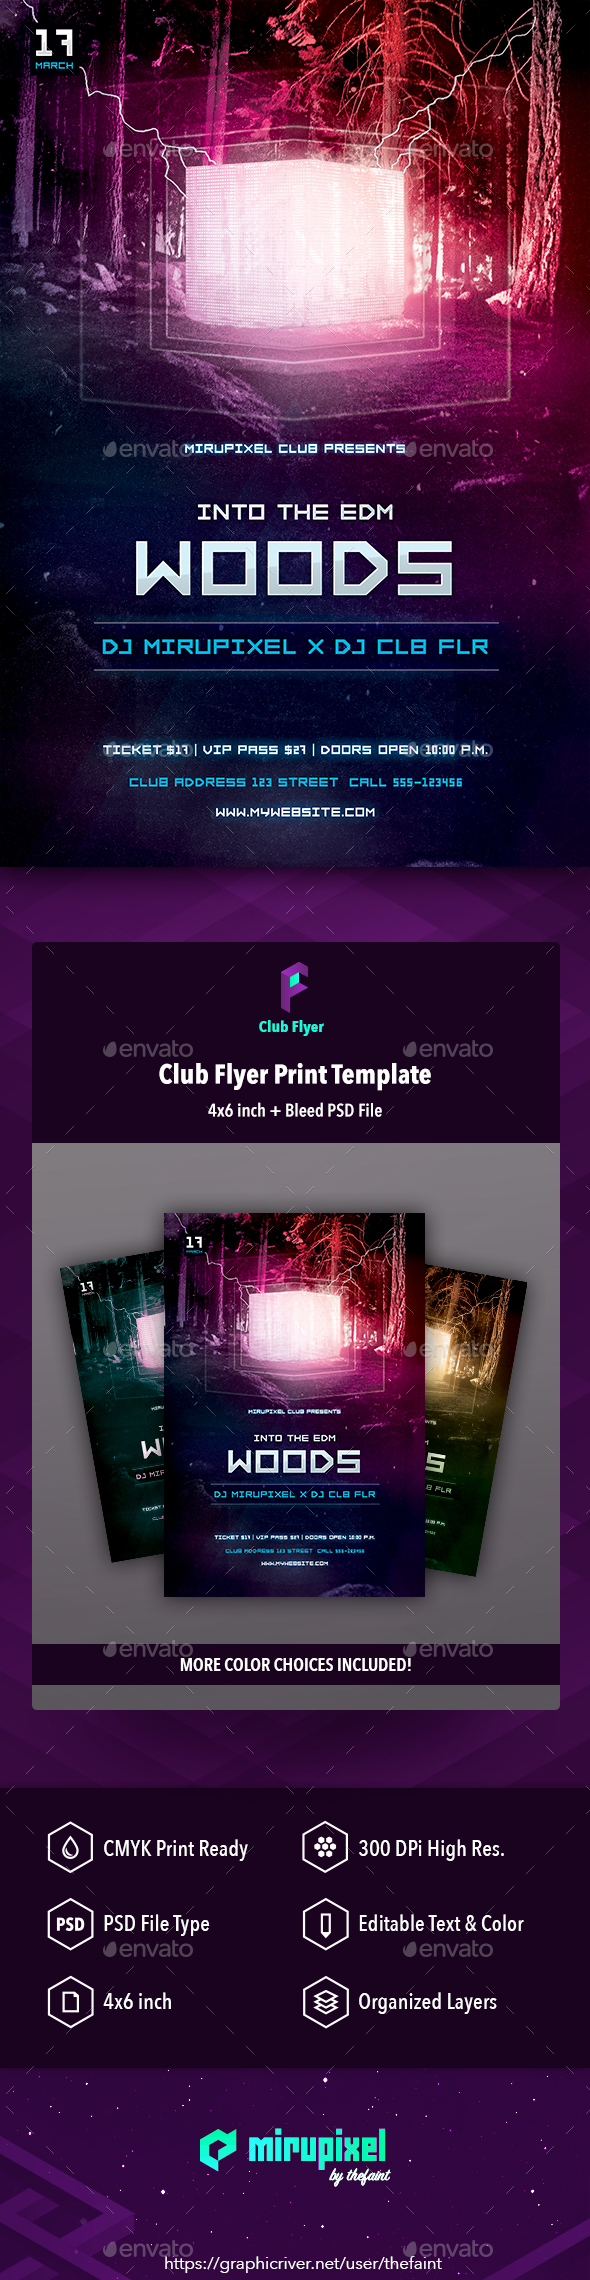 GraphicRiver Club Flyer EDM Woods 20960415